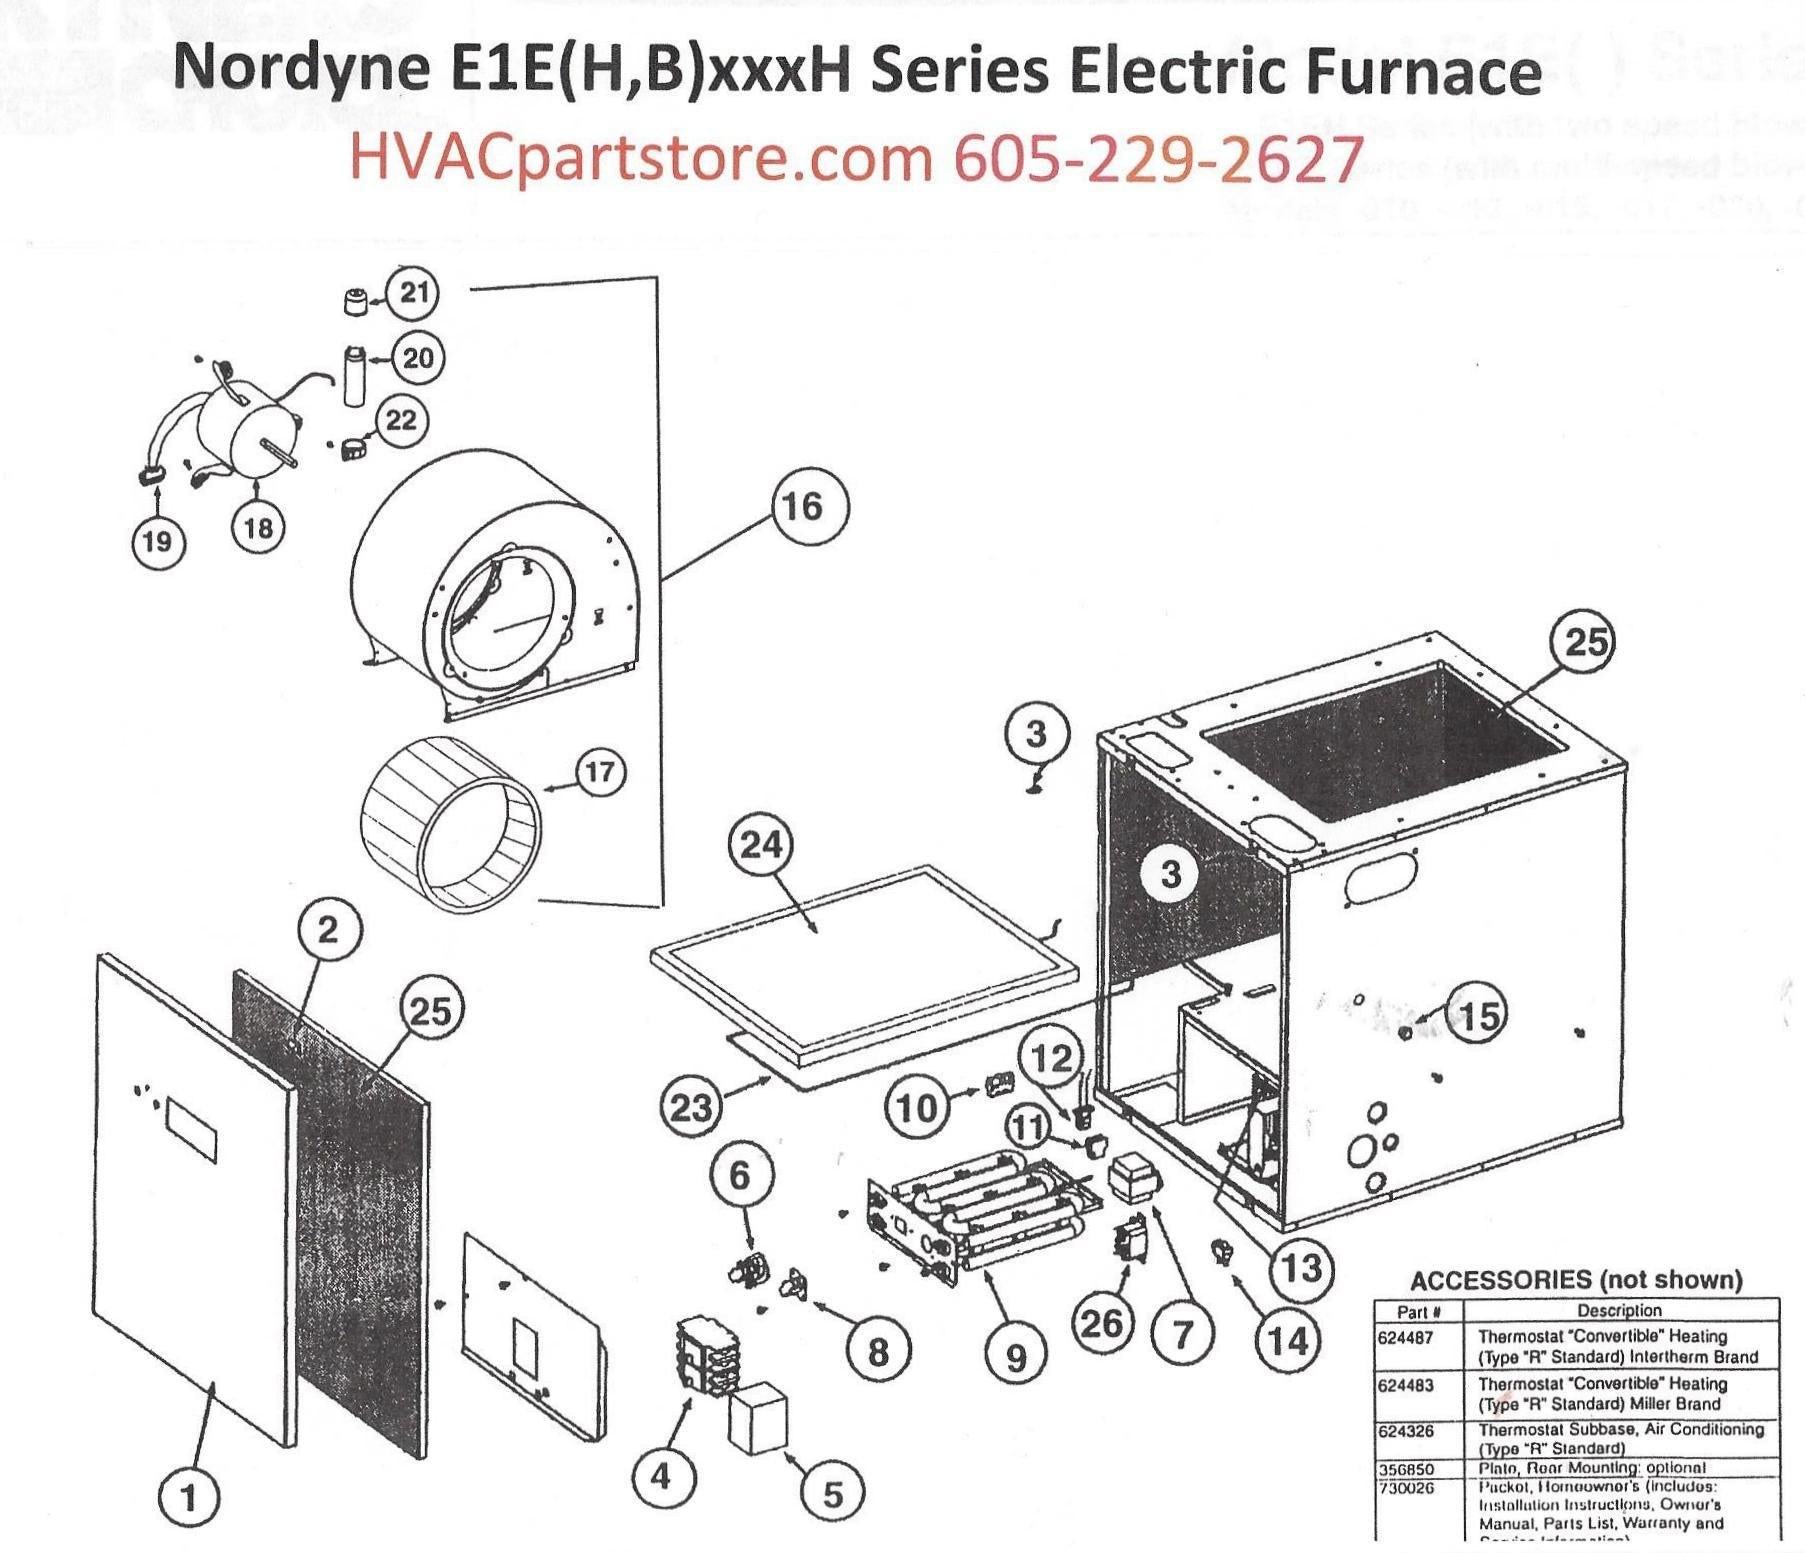 goodman a c wiring diagram with E1eh015h Nordyne Electric Furnace Parts on Goodman Furnace Wiring Diagram B1370738 besides 00001 also Rv Electrical Outlet besides Wiring Diagrams Goodman Air Handler Single Phase as well Techsupportcenter.